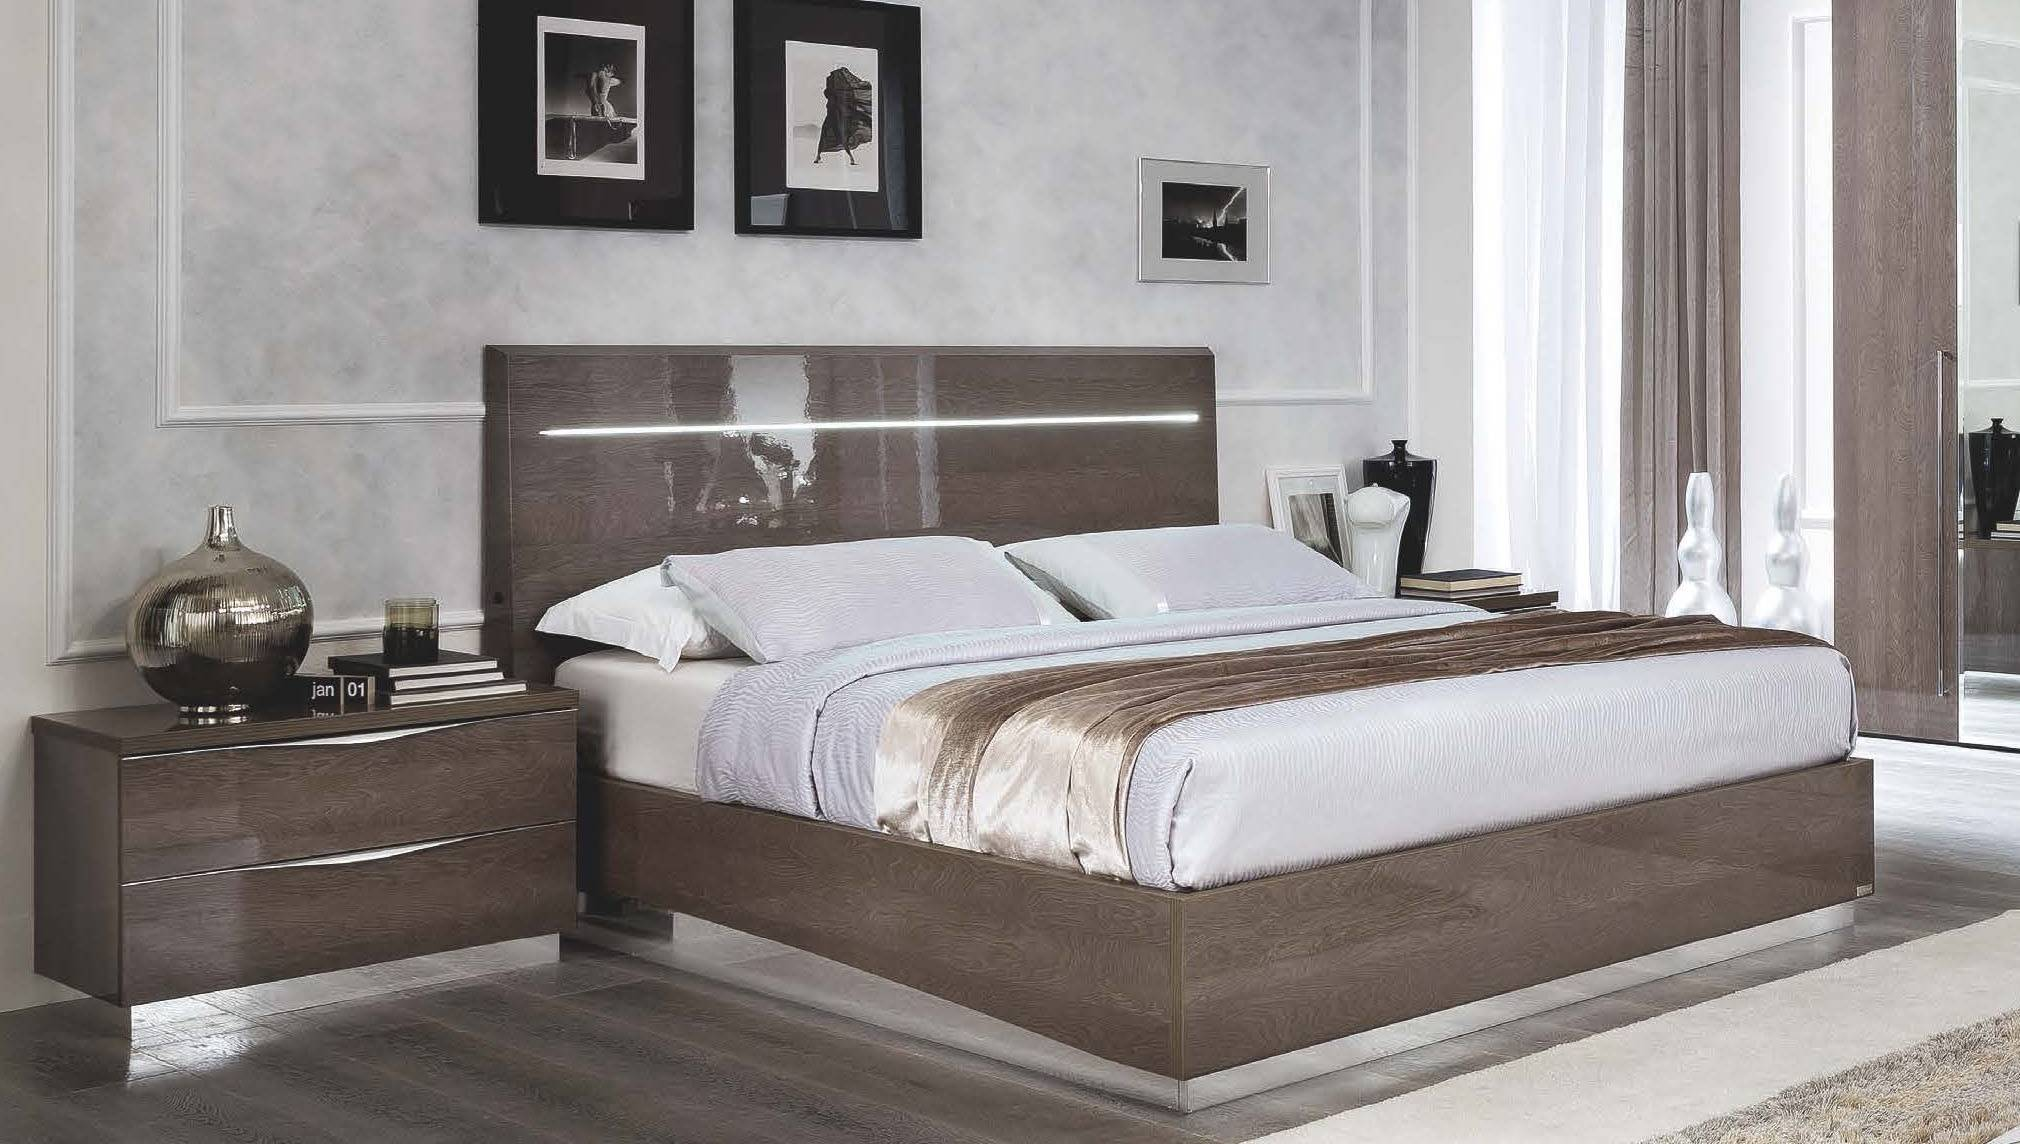 Awesome Made In Italy Quality High End Bedroom Sets San Jose California  Camelgroup Platinum Silver Birch